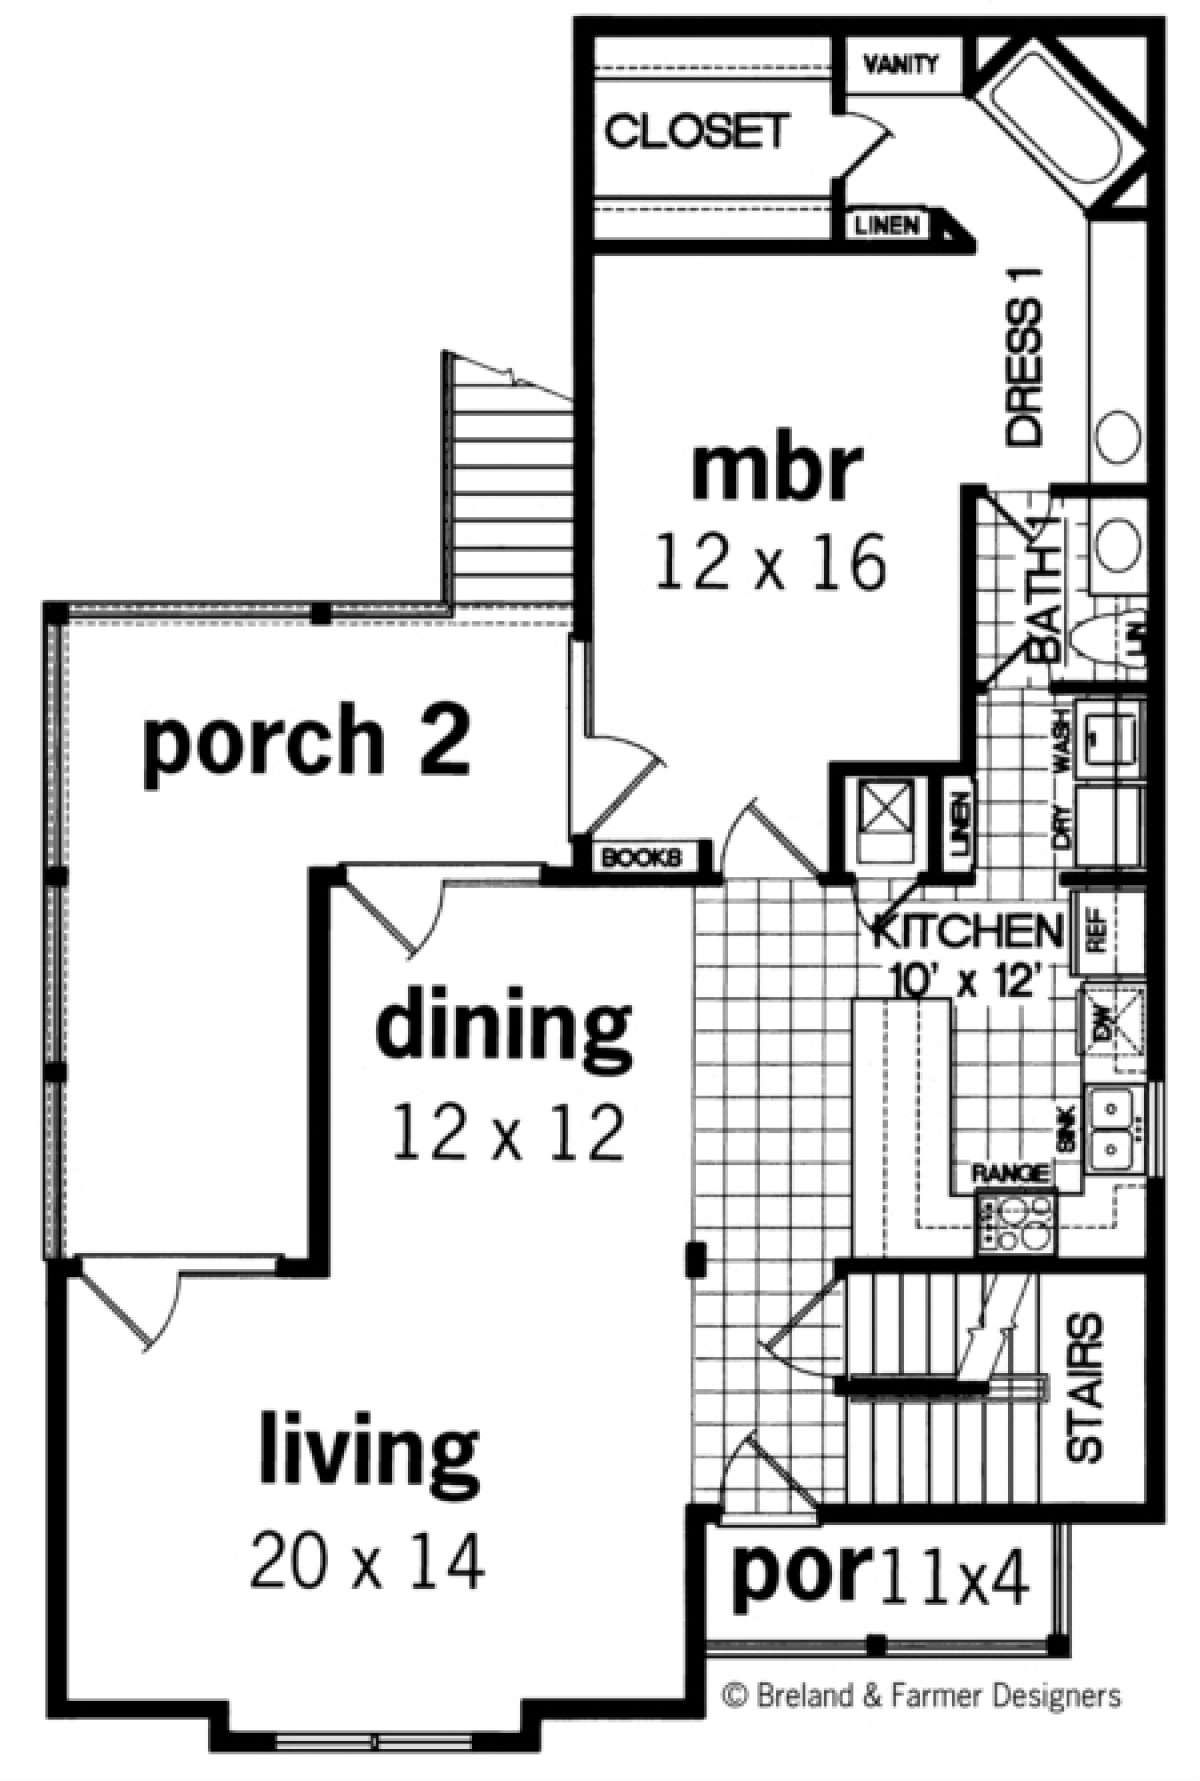 House Plan 048 00123 Vacation Plan 2 020 Square Feet 4 Bedrooms 3 Bathrooms Beach Style House Plans House Plans Coastal House Plans